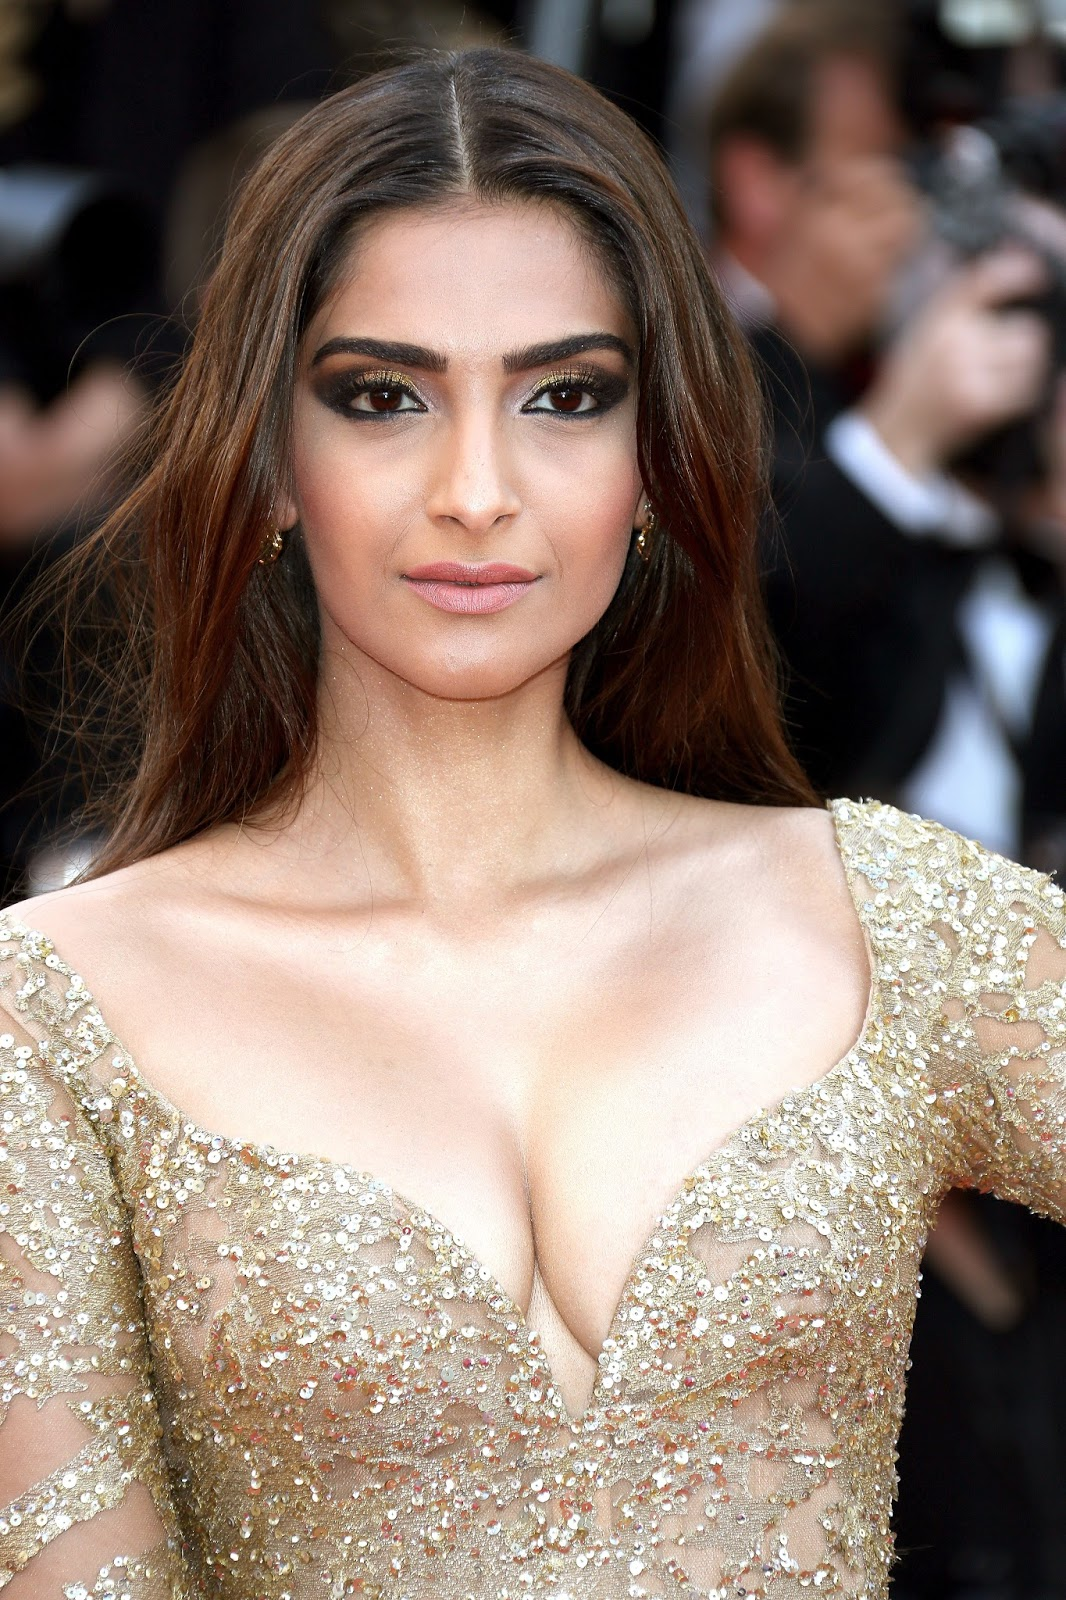 Sonam Kapoor Sexiest Cleavage Show In Elie Saab Couture At -9593